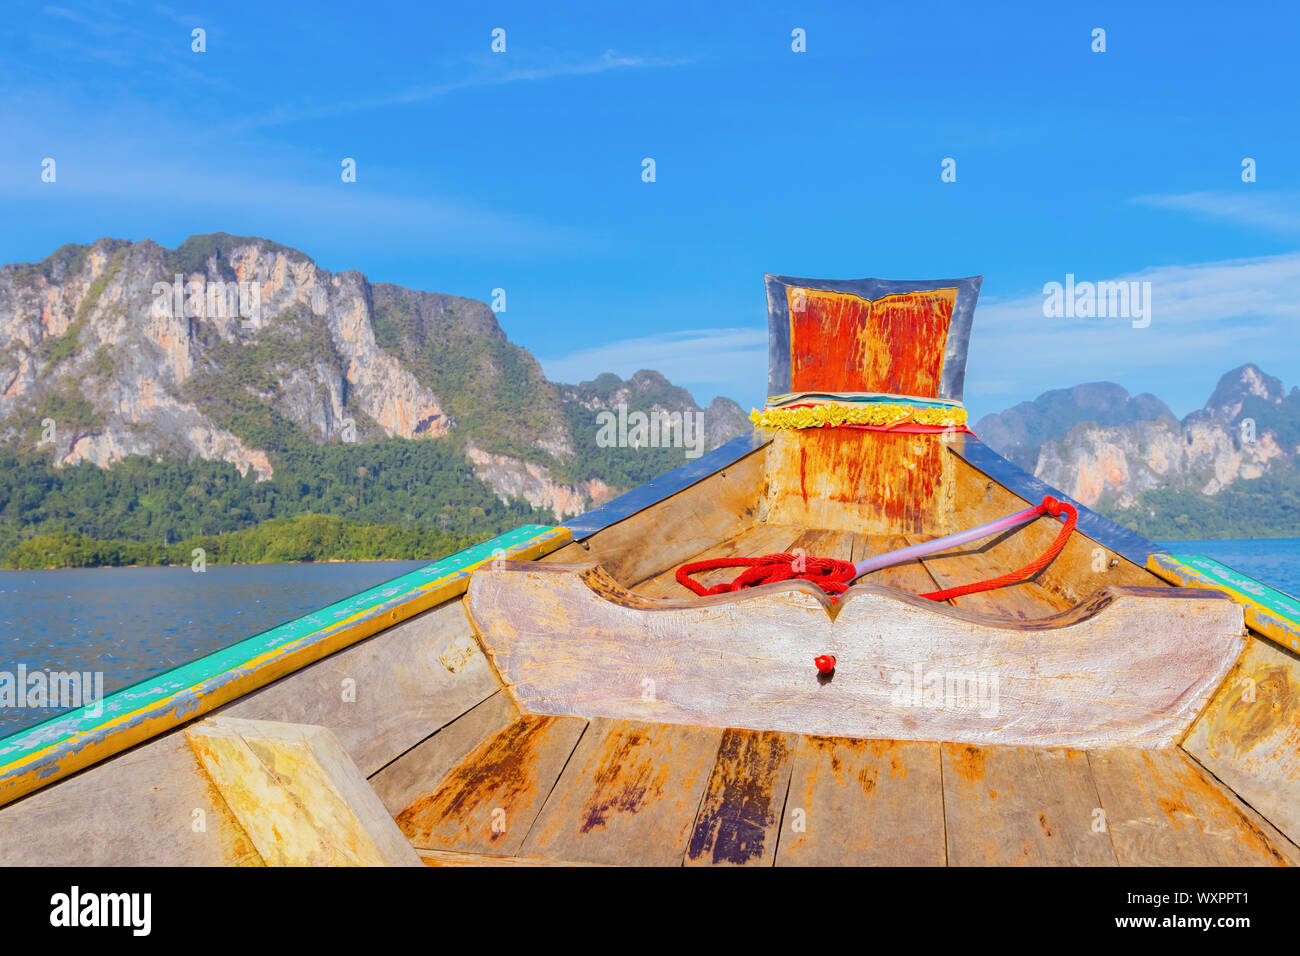 Wooden boat on sailing travel in Ratchaprapa Dam and Cheow Larn Lake, Khao Sok nature beautiful in Thailand Stock Photo